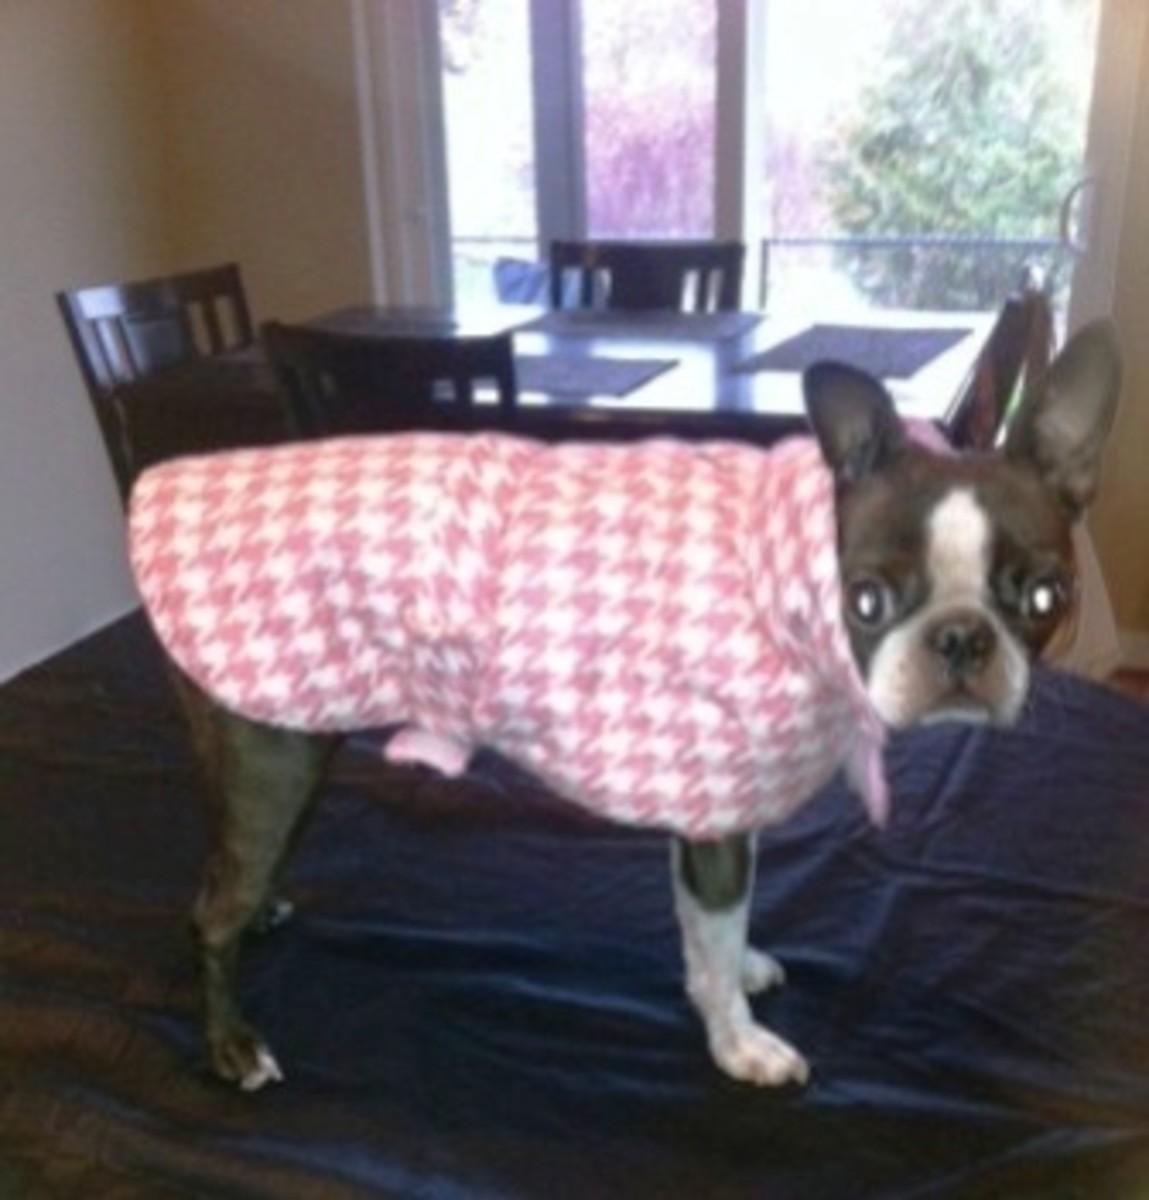 A proper fitting dog coat for this Boston Terrier.